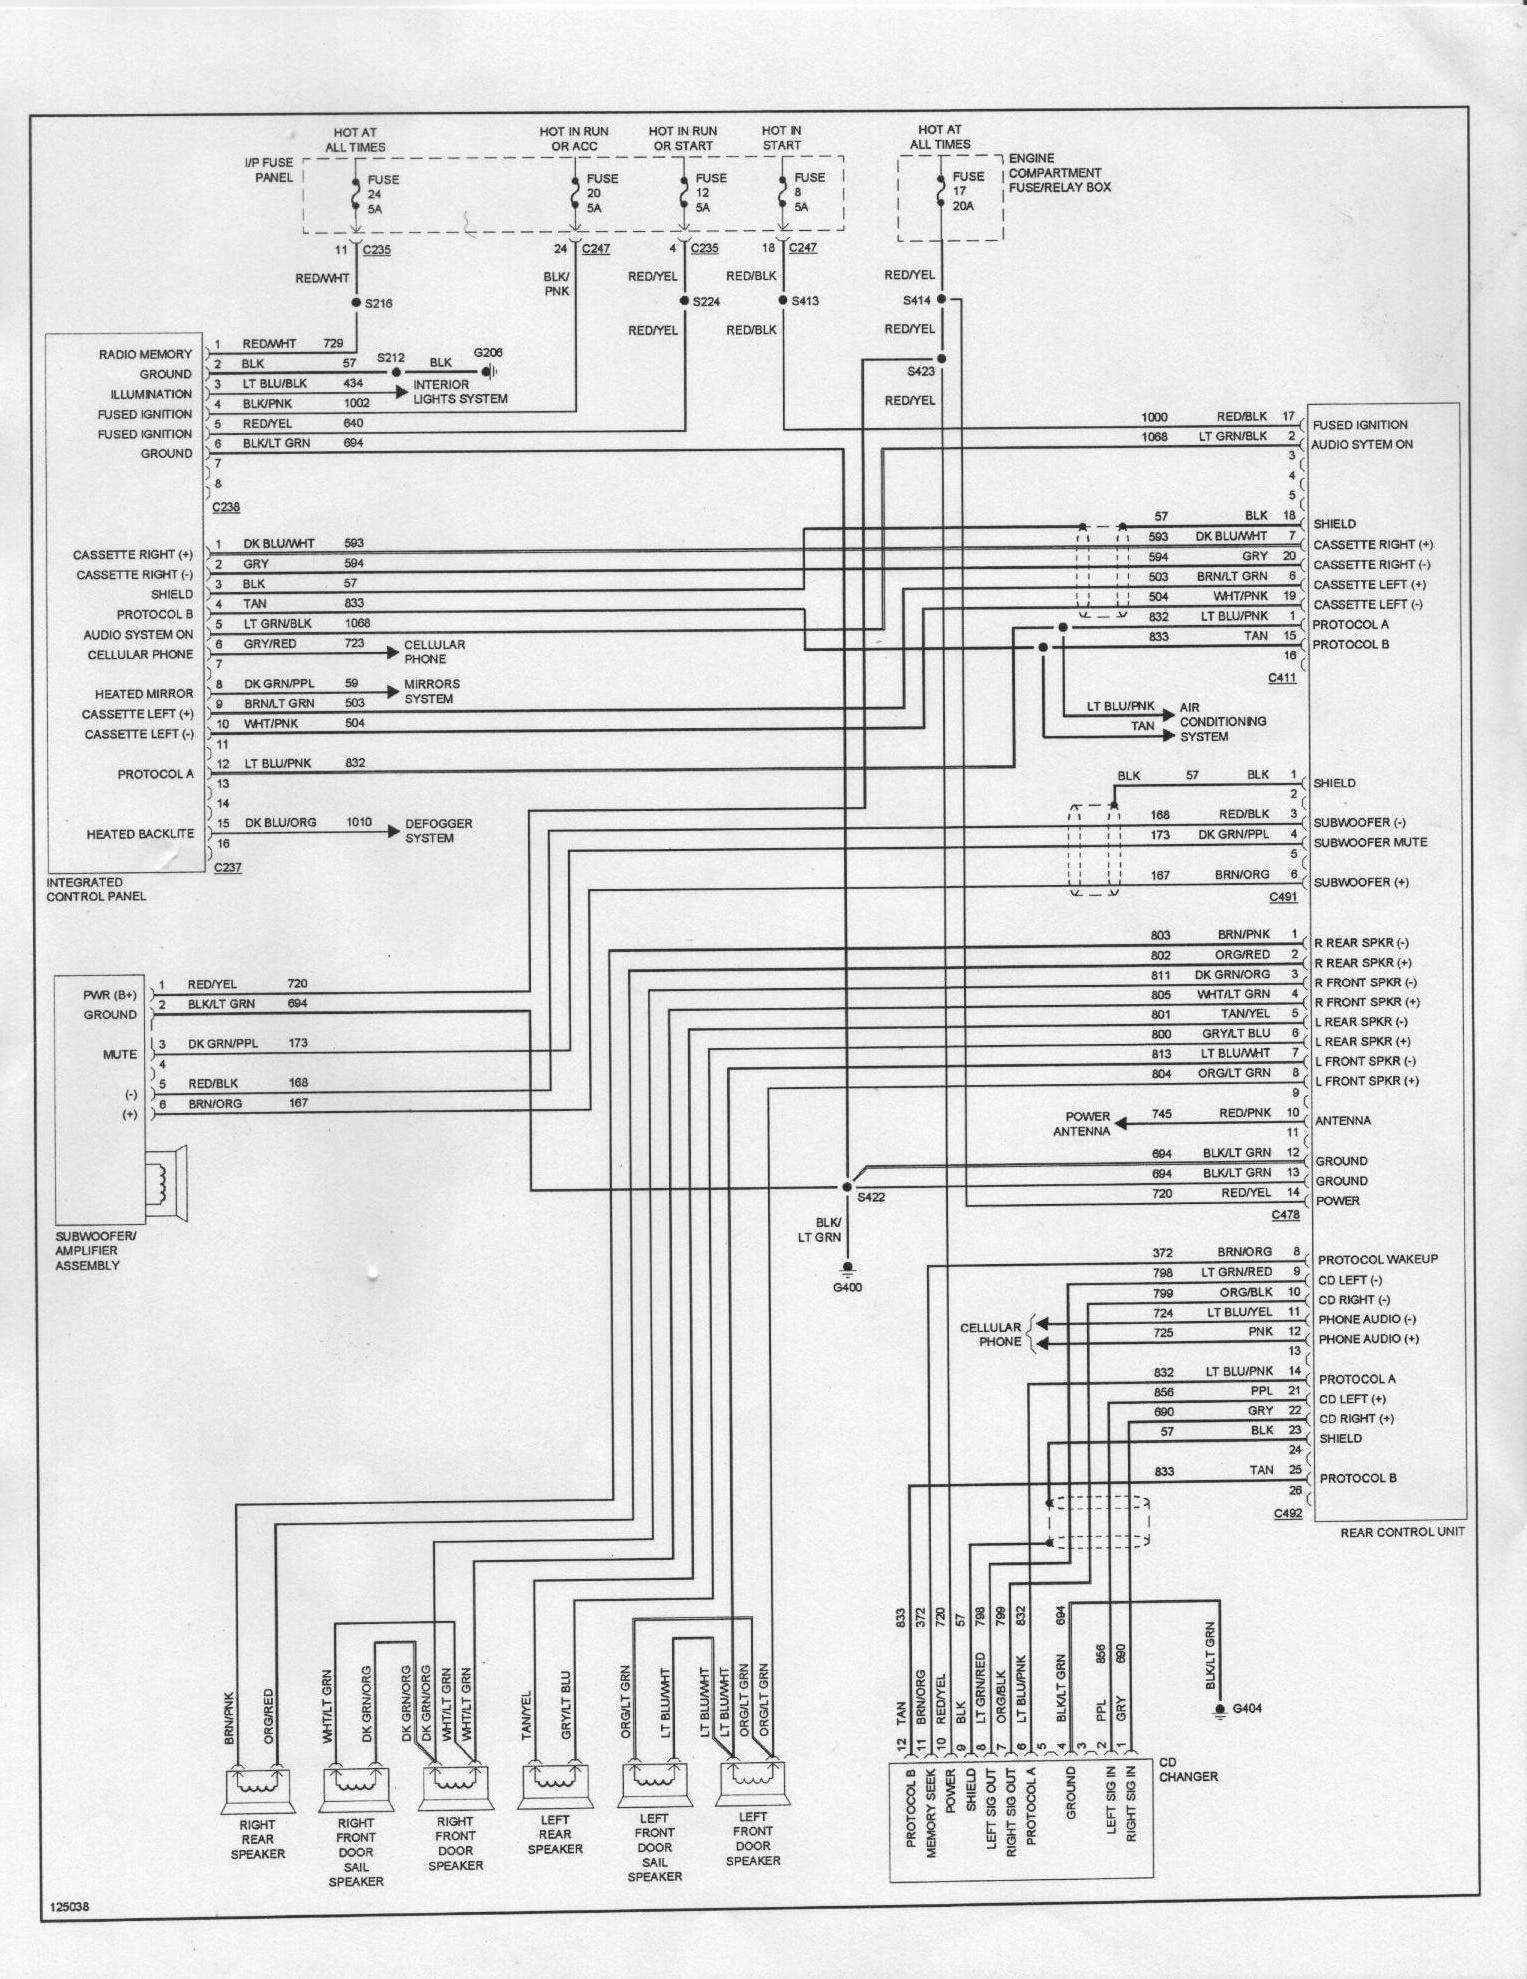 44917d1173064914 wiring diagram ford taurus diagram96 wiring diagram ford taurus taurus car club of america ford 2000 ford taurus wiring diagram at aneh.co